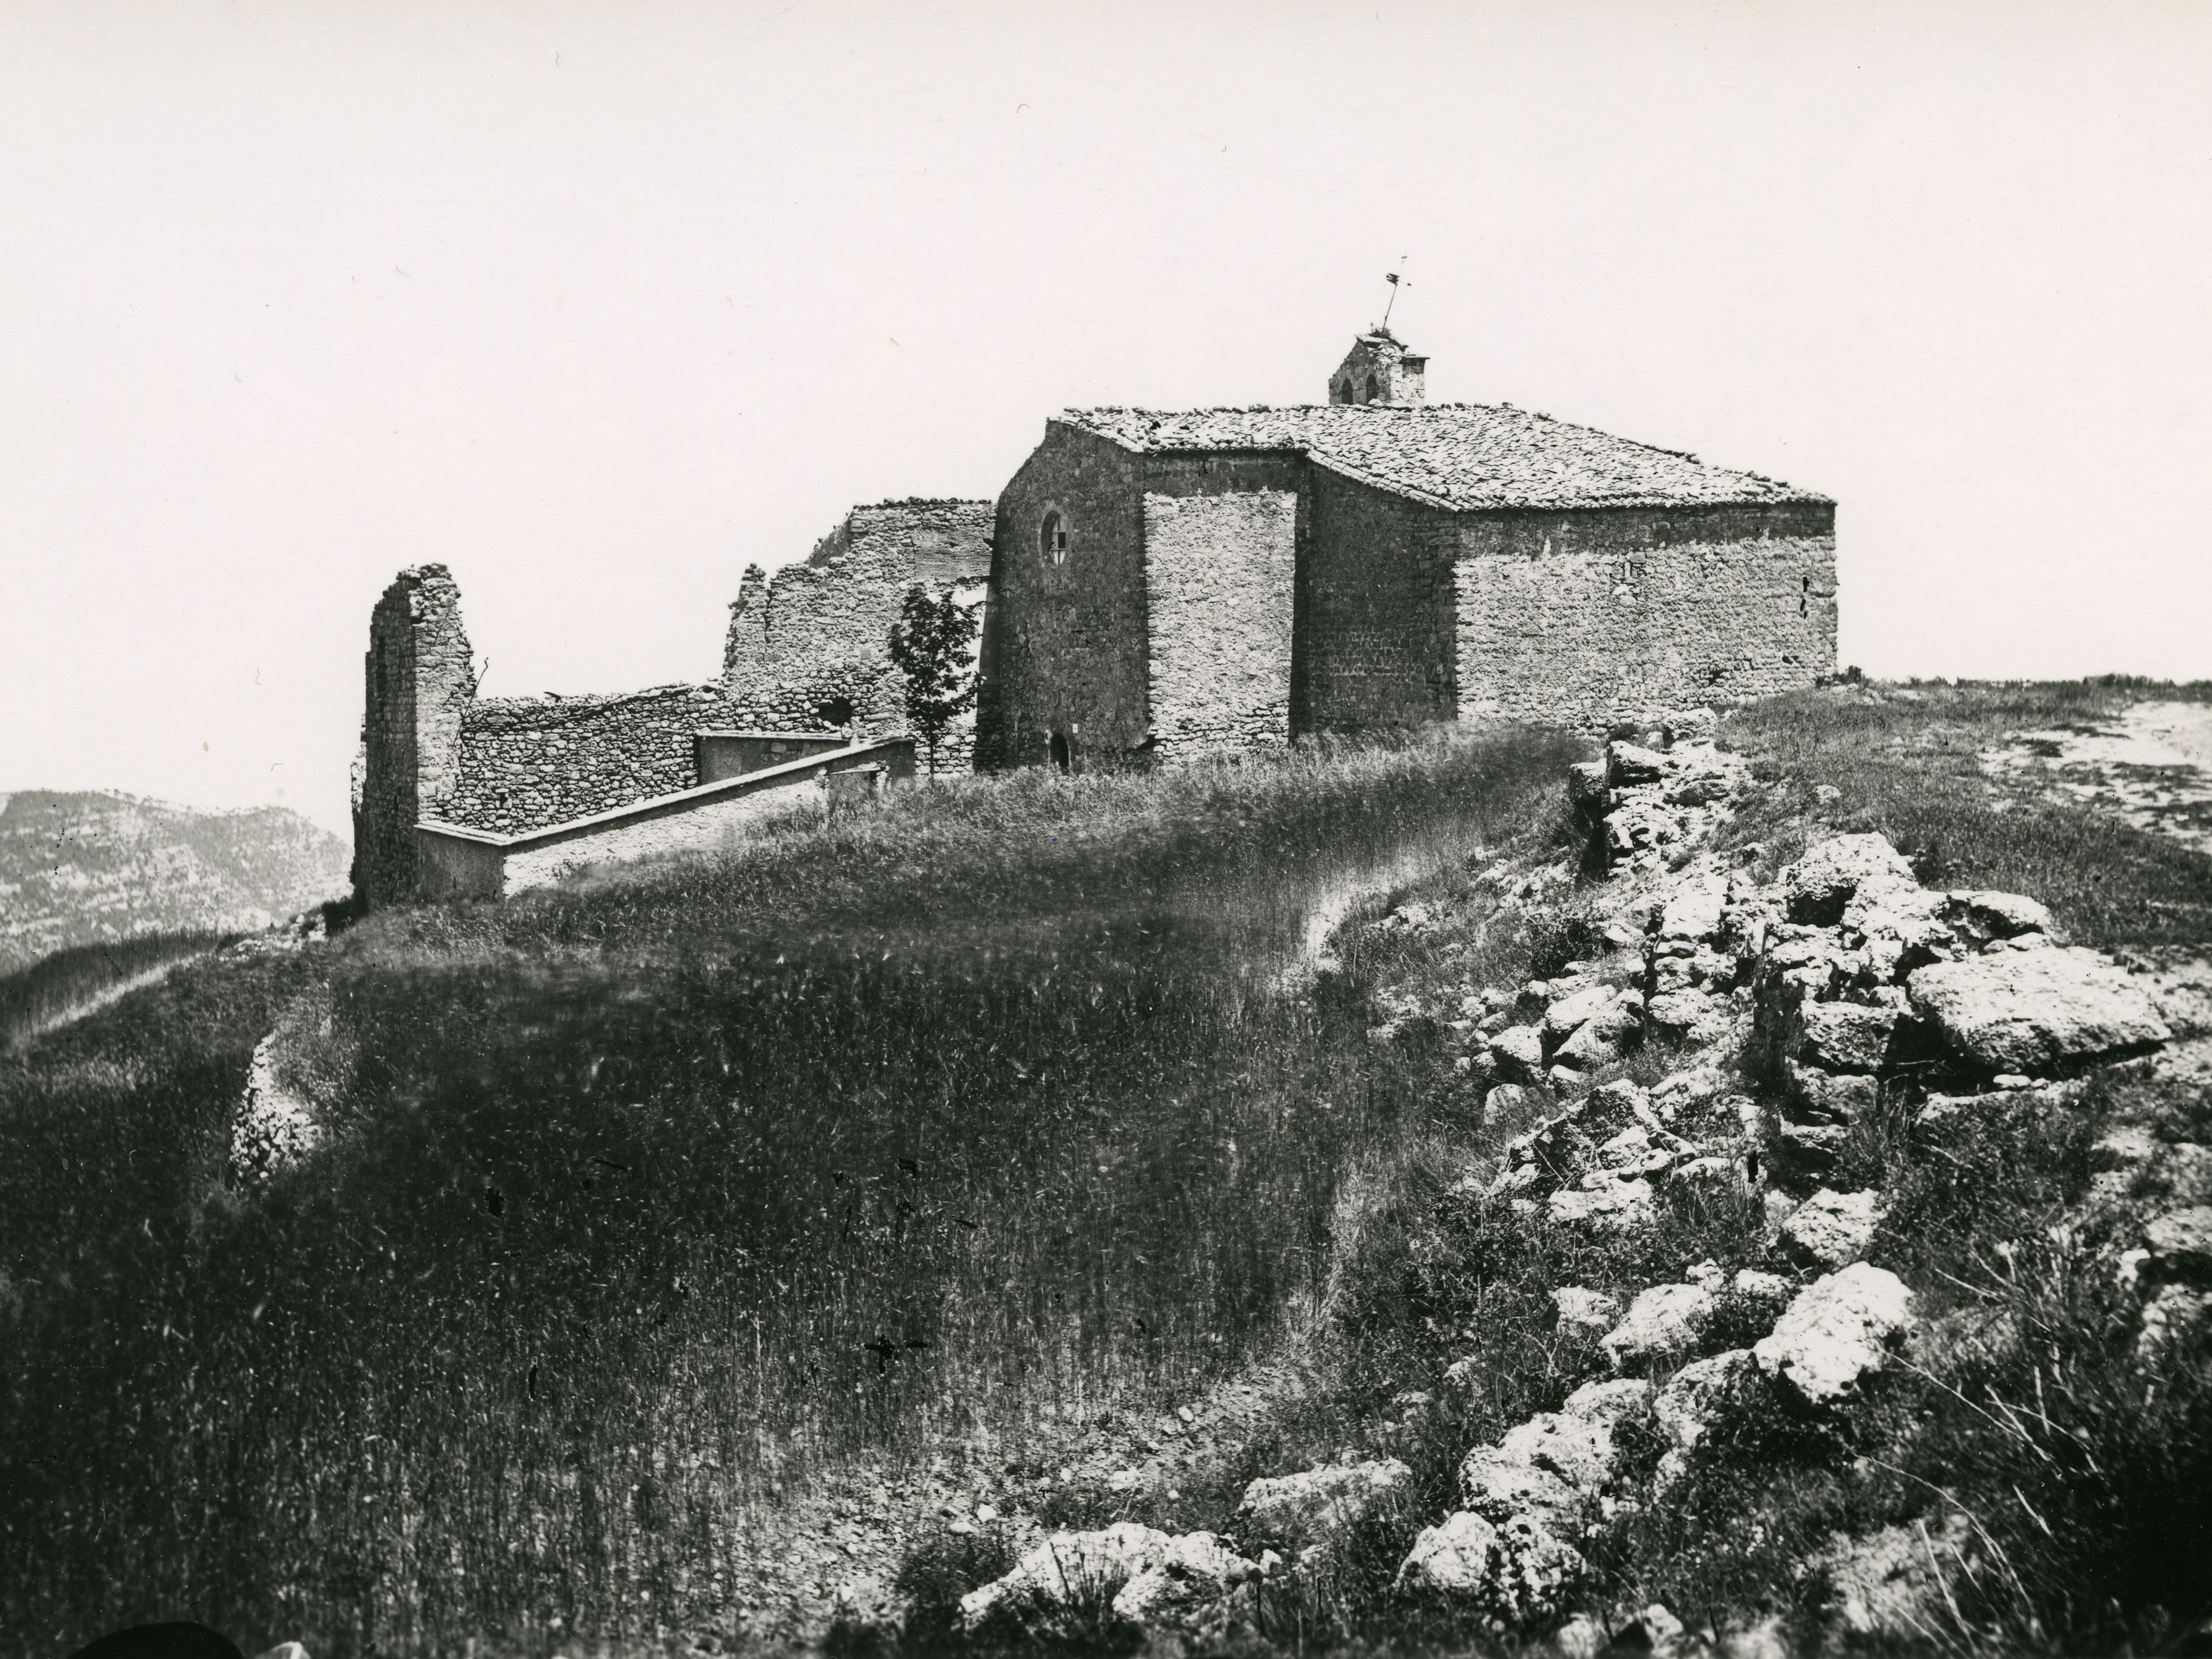 Santa Cecilia in the late 19th century